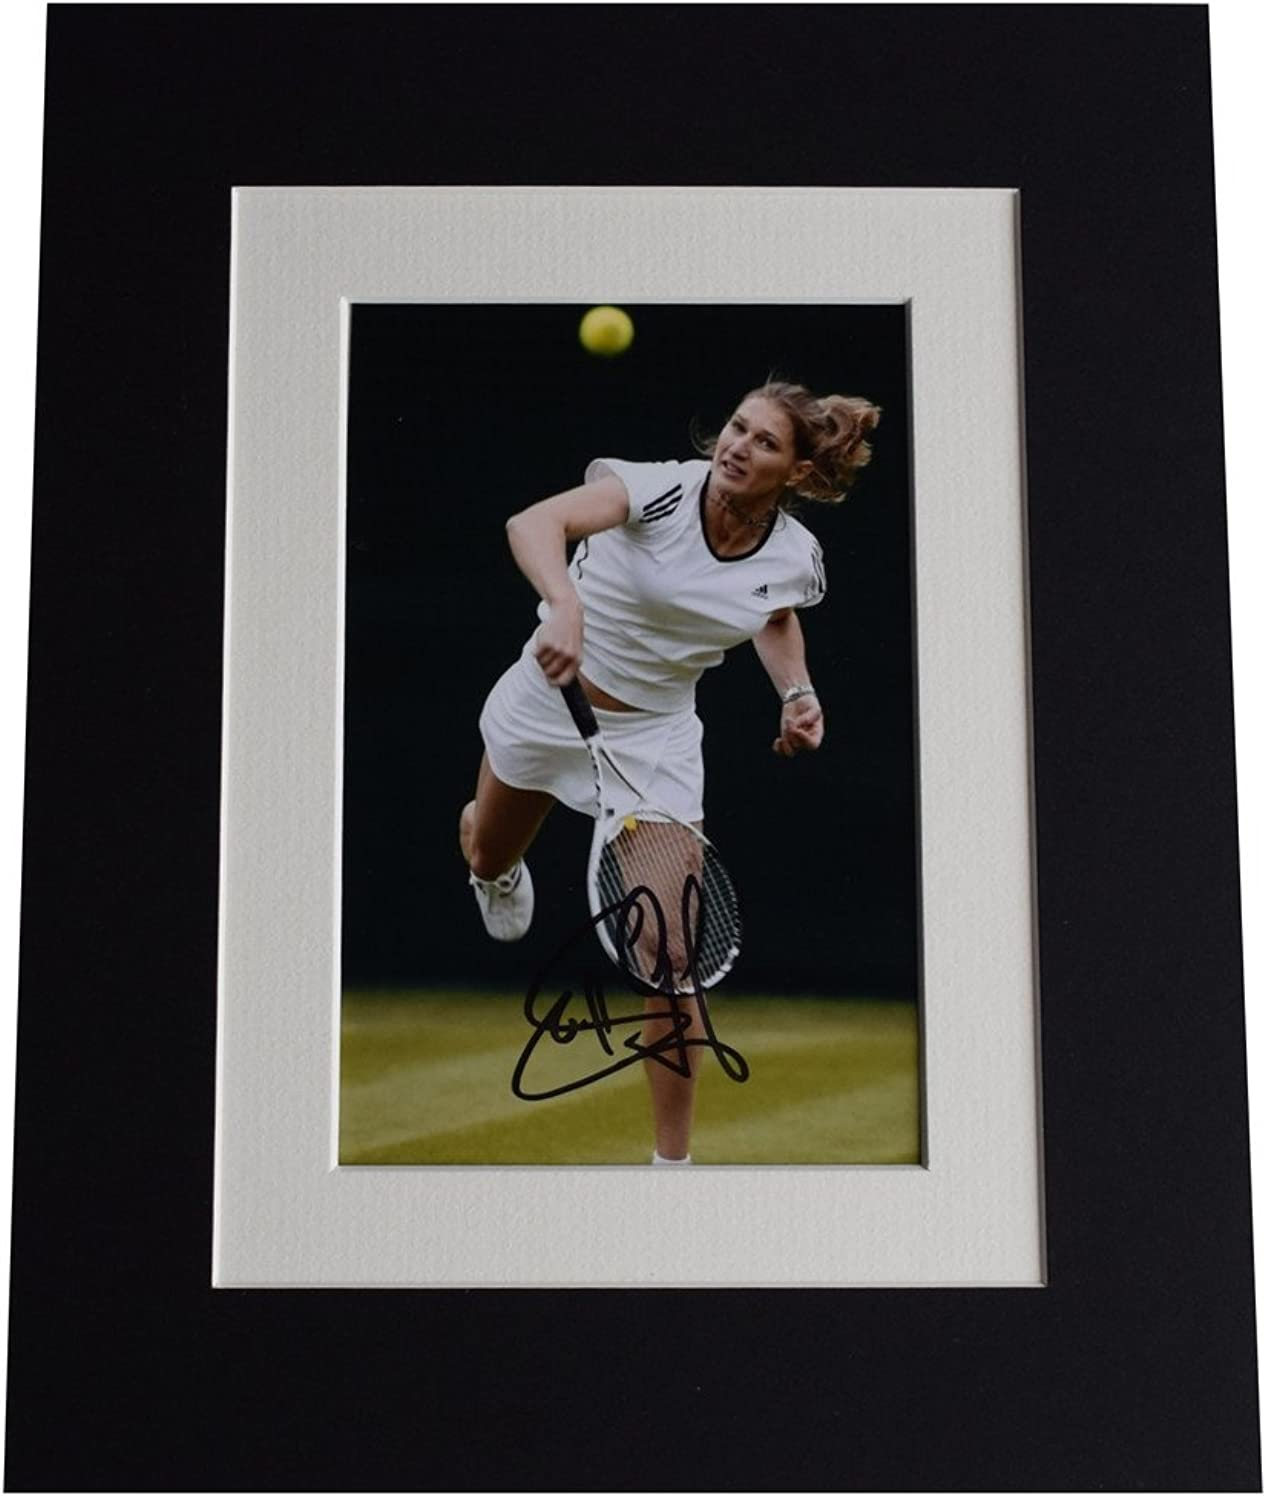 Sportagraphs Steffi Graf Signed Autograph 10x8 photo display Tennis Champion AFTAL & COA PERFECT GIFT